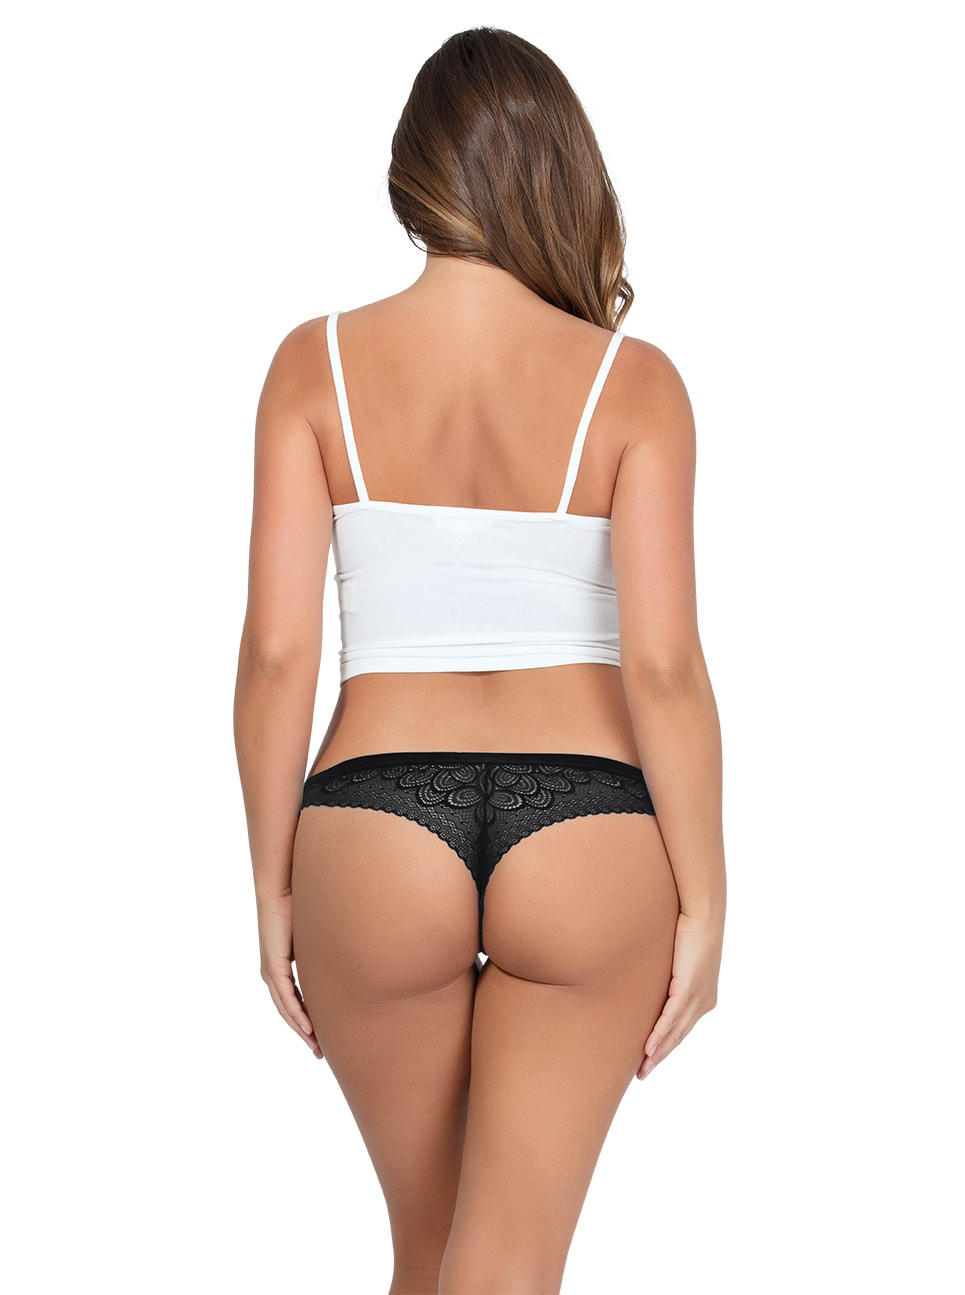 ParfaitPanty SoGlam ThongPP402 black back copy - Parfait Panty So Glam Thong - Black - PP402